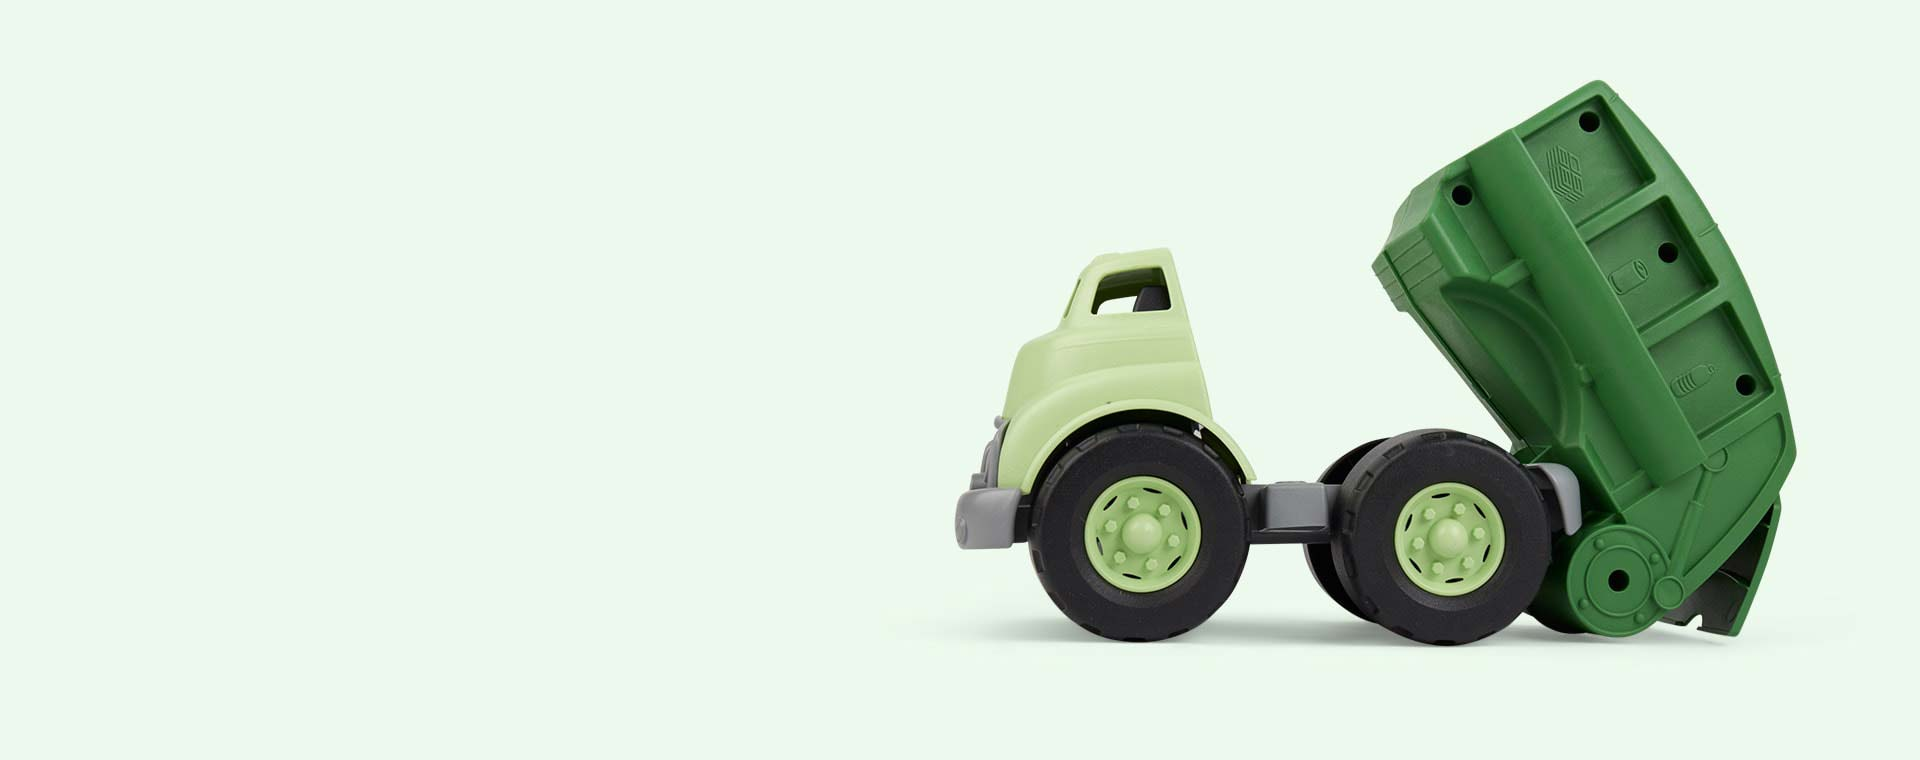 Green Green Toys Recycling Truck